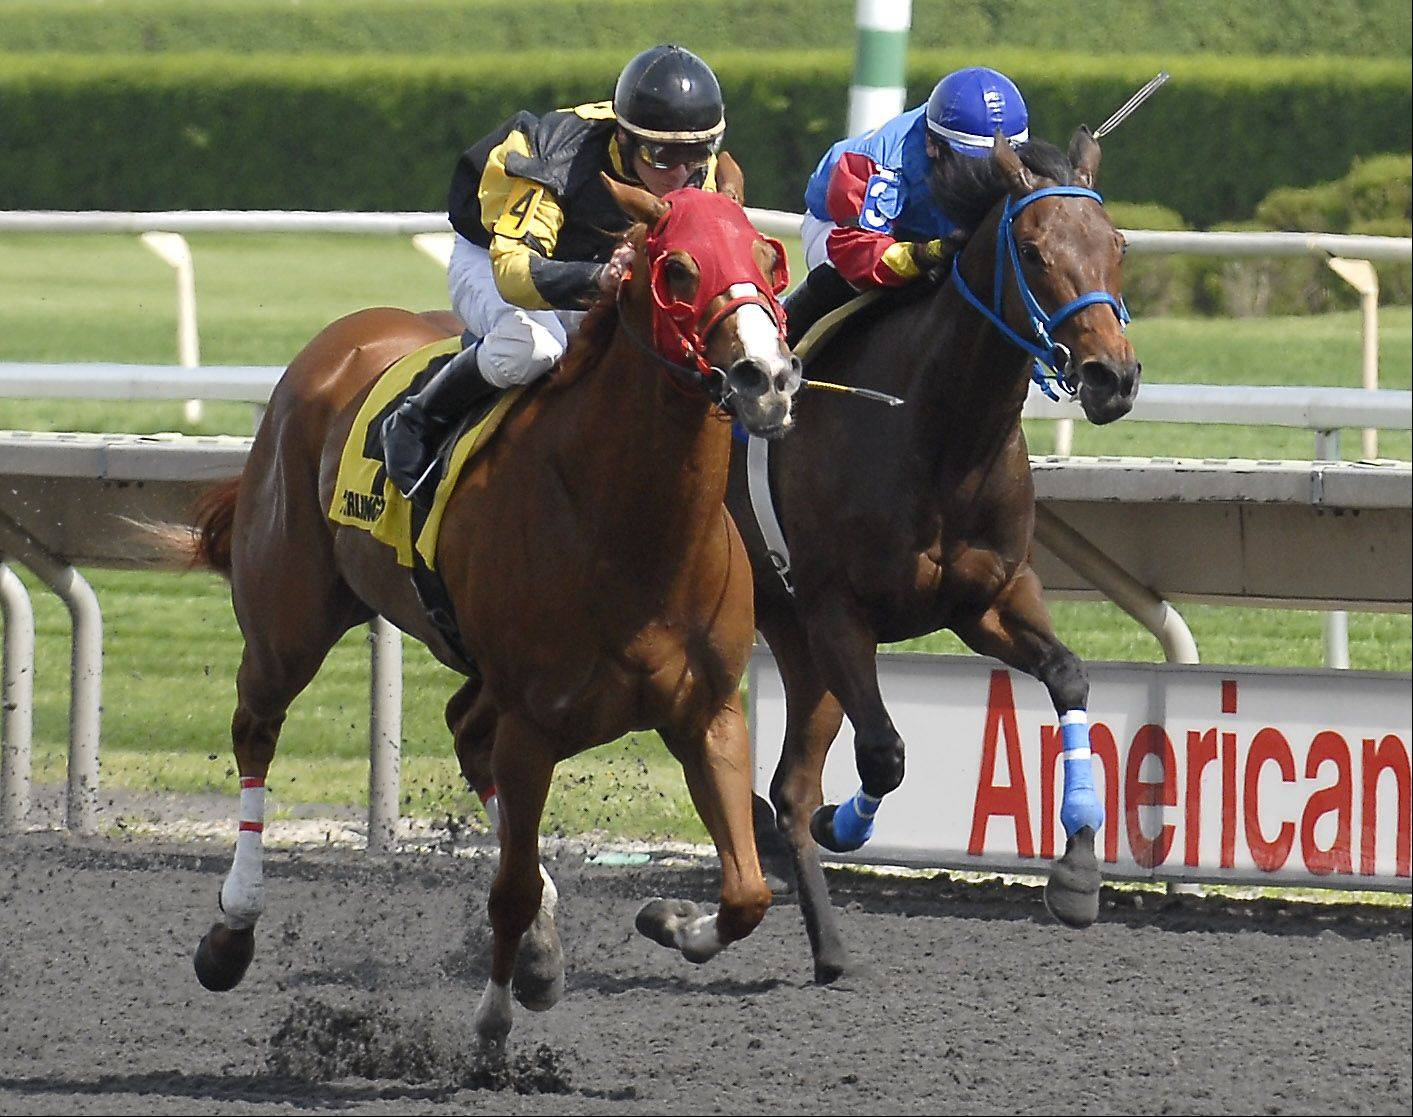 Cyberphobe, left, and Kentucky Gal duked it out in the first race on opening day last year at Arlington International Racecourse in Arlington Heights. Opening day is Friday, May 3.